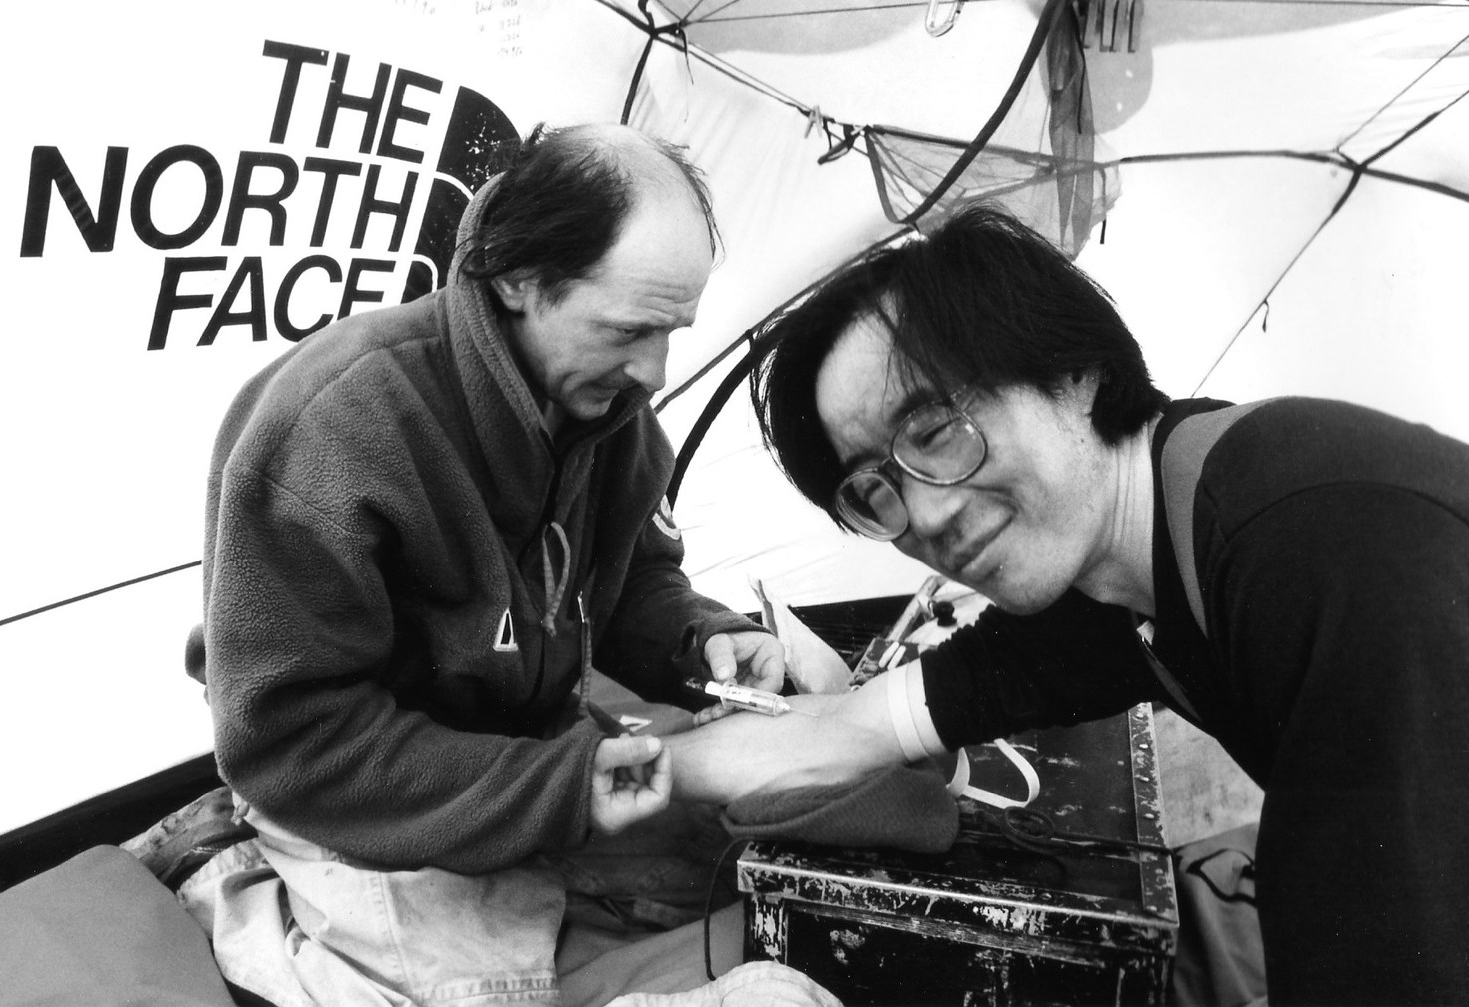 Dr. Jean-Louis Etienne takes blood samples from Qin Dahe as part of his study for the European Space Agency.©Trans-Antarctica-Per Breiehagen